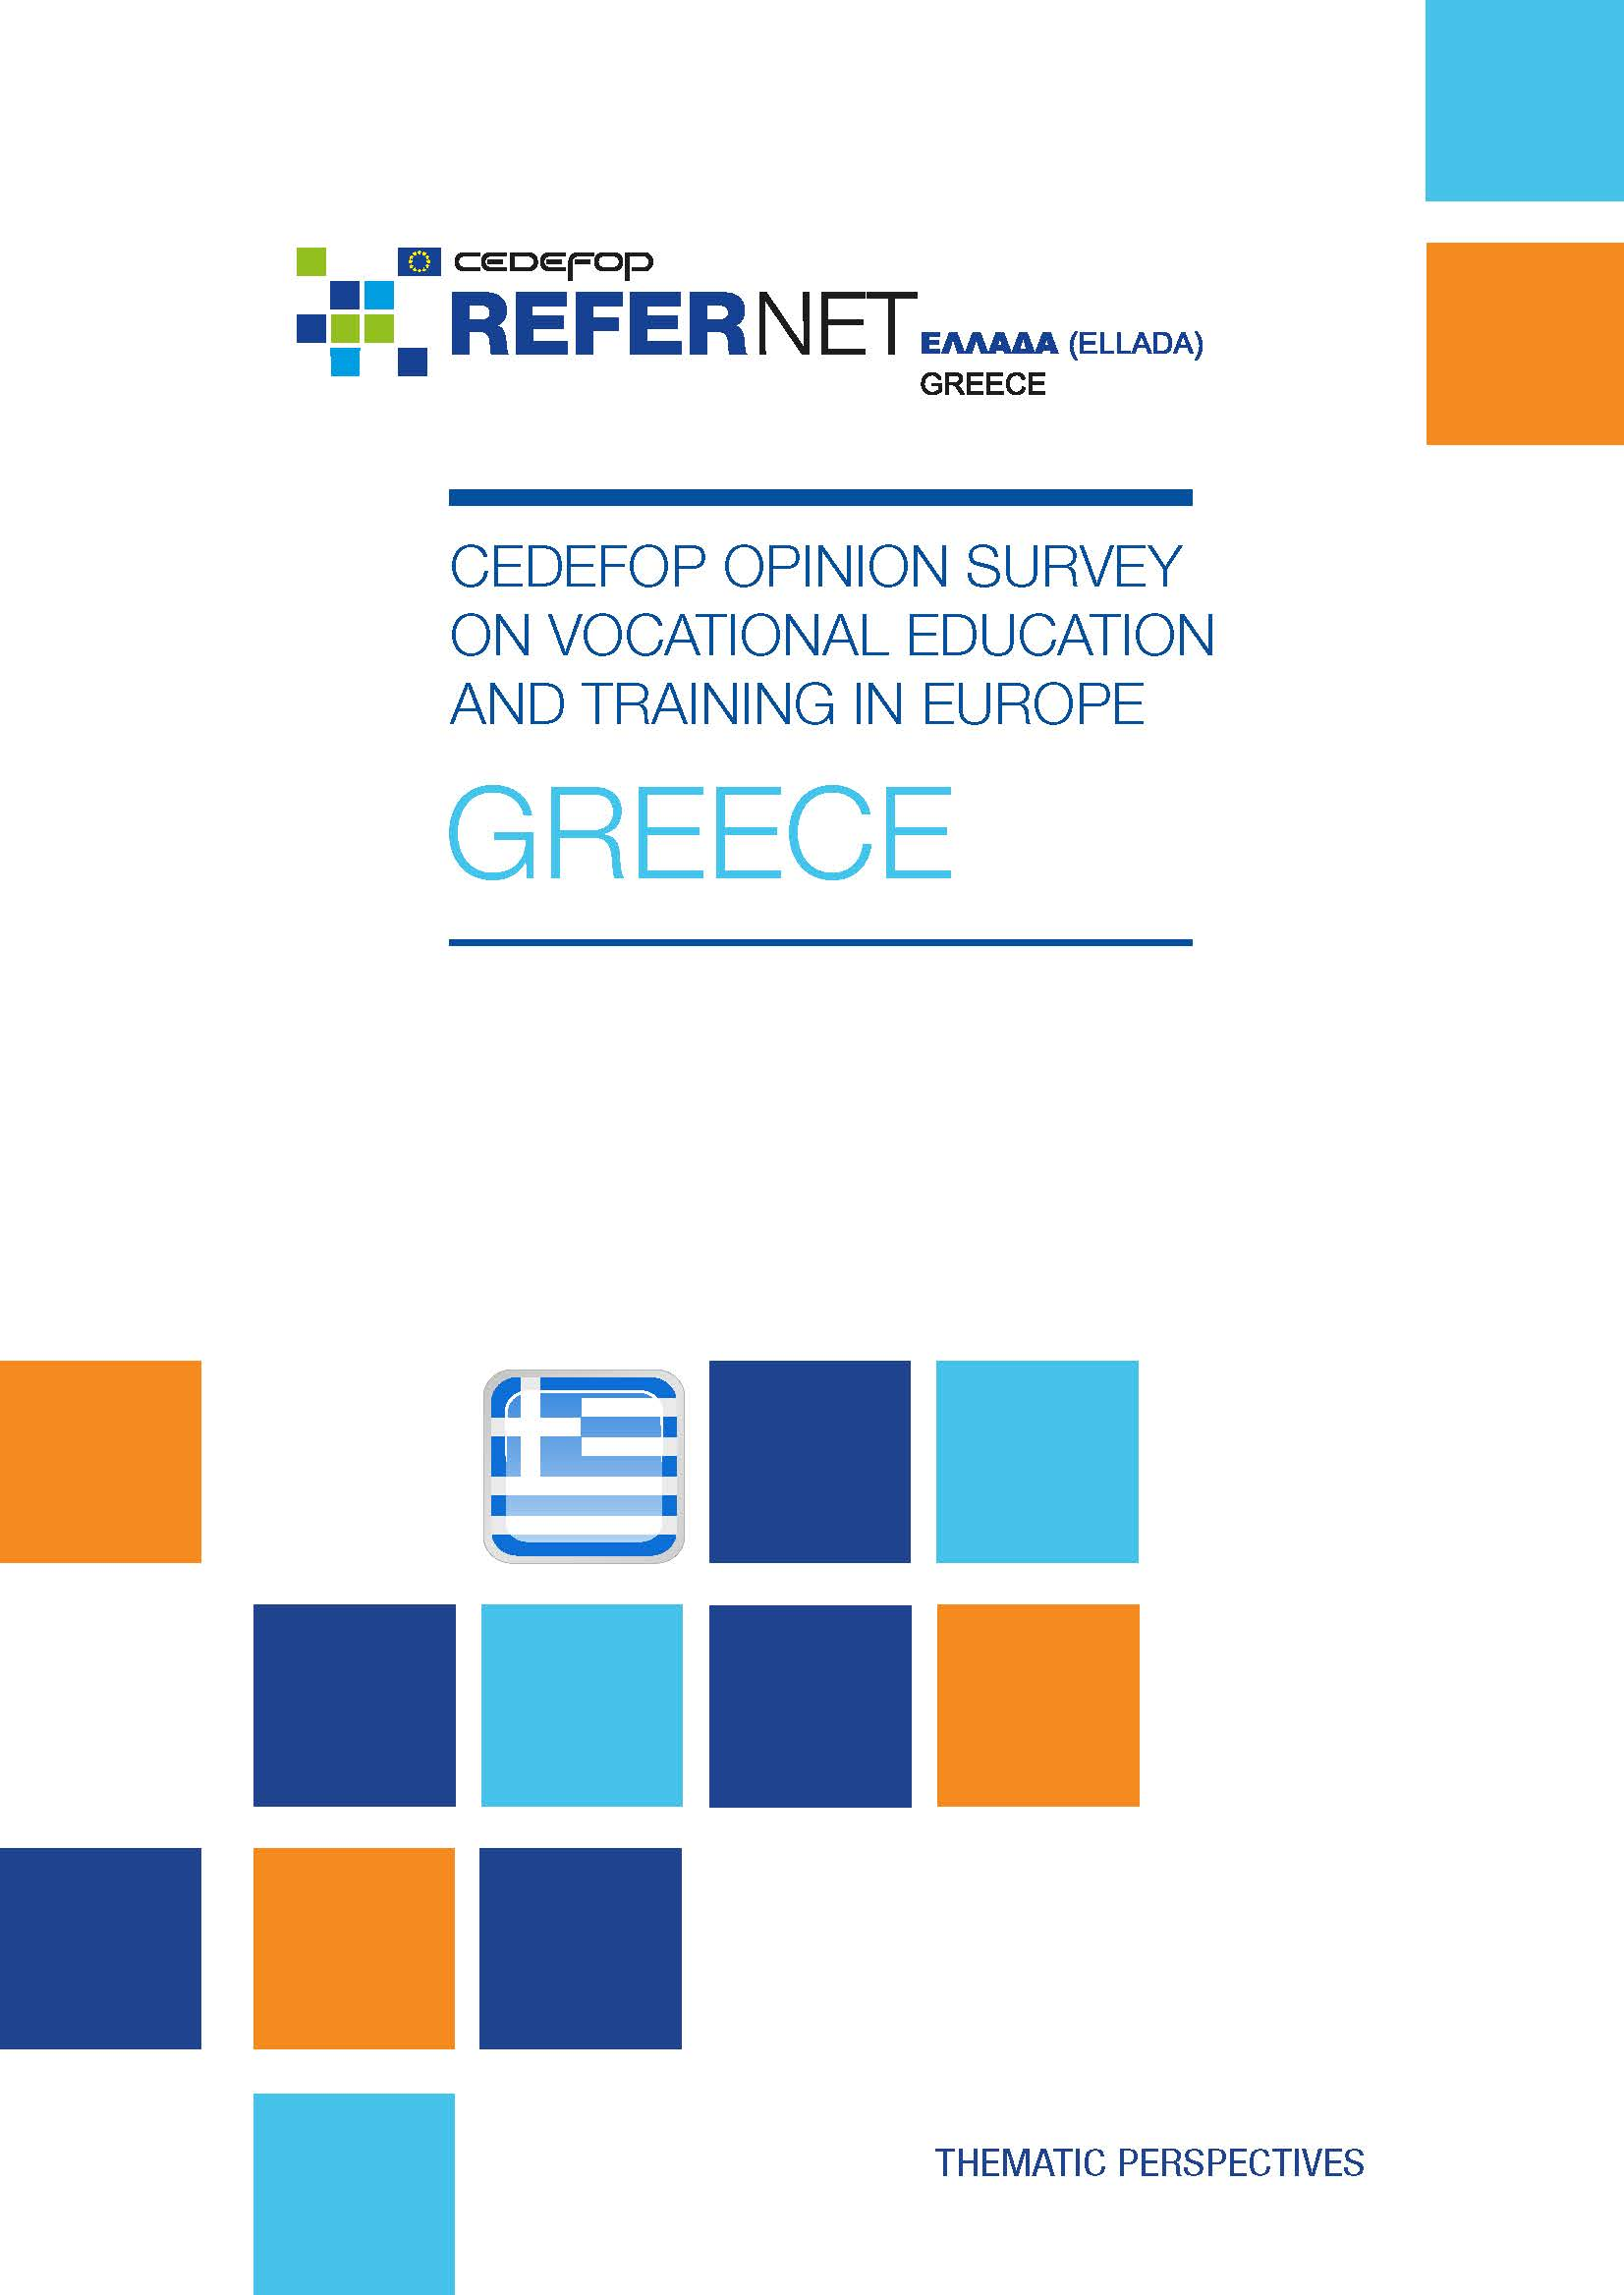 Cedefop public opinion survey on vocational education and training in Europe: Greece